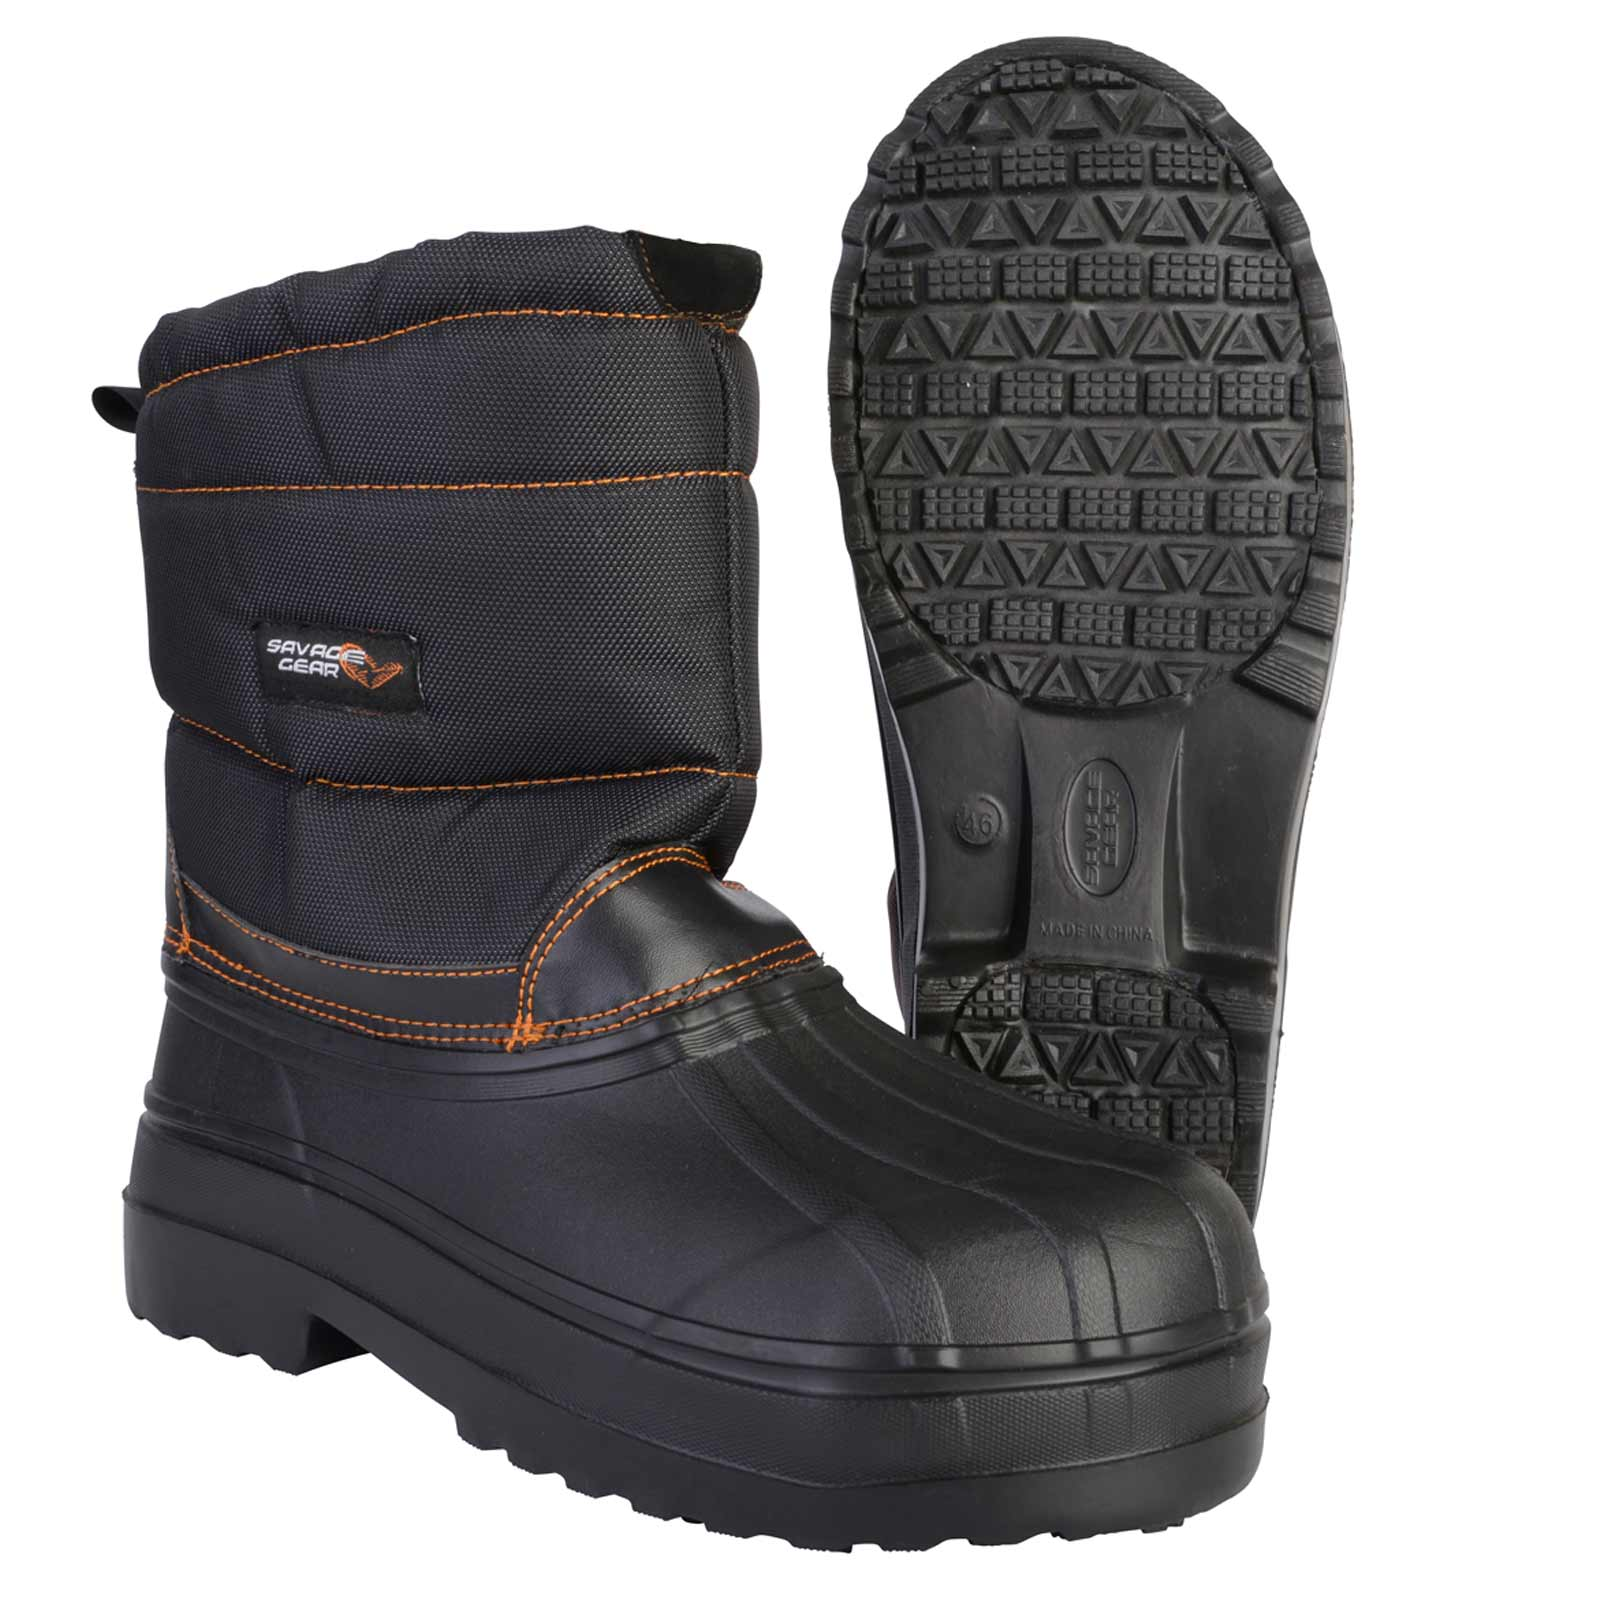 Savage Gear Off-Road Boots Winterstiefel Thermostiefel Outdoor Stiefel Schuhe